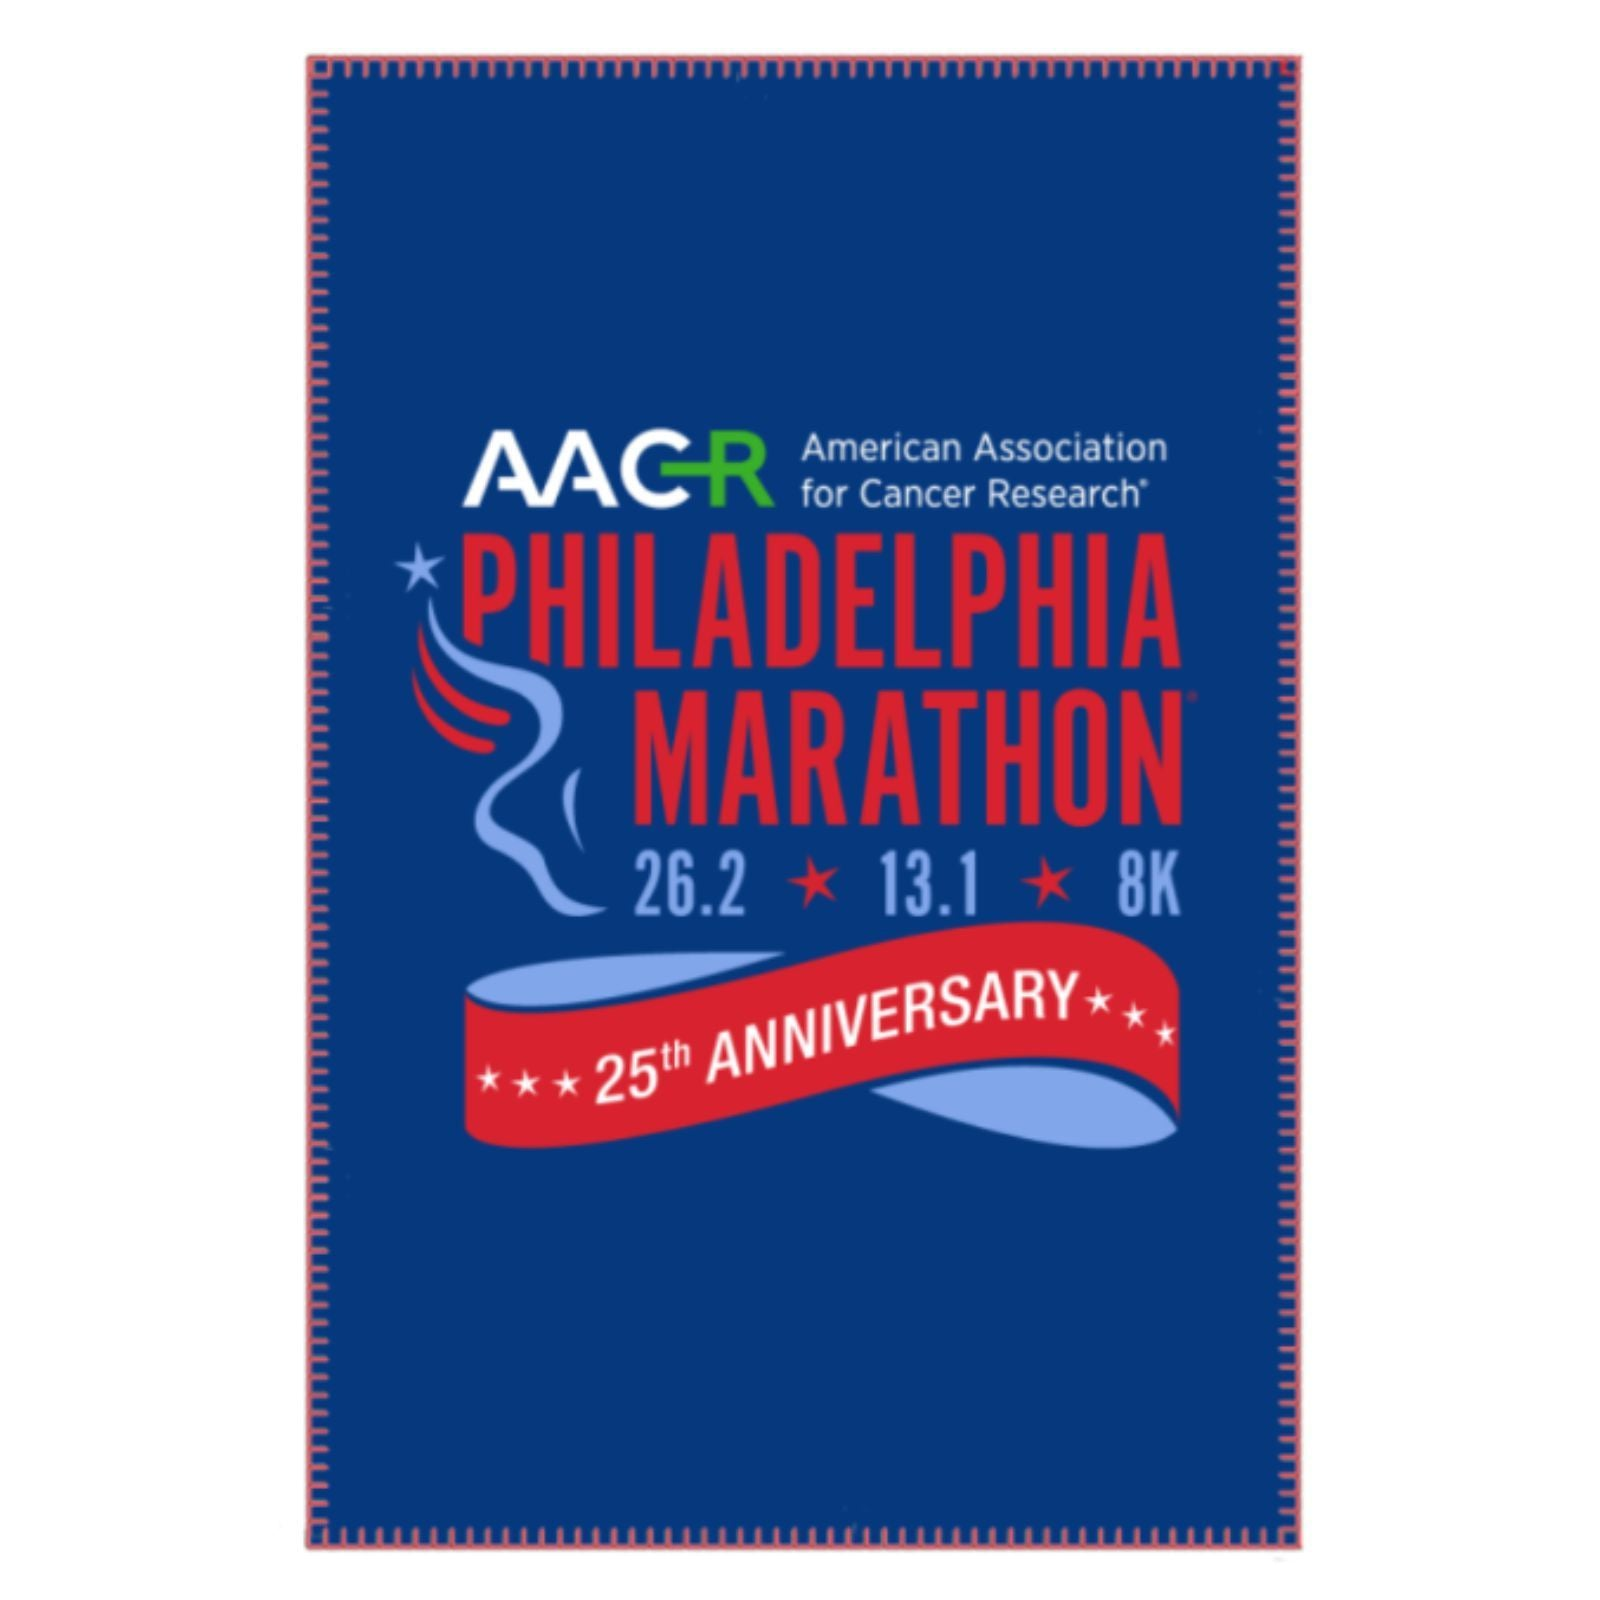 "AACR Philadelphia Marathon '25th Anniversary' 50""x60"" Fleece Blanket - Navy"